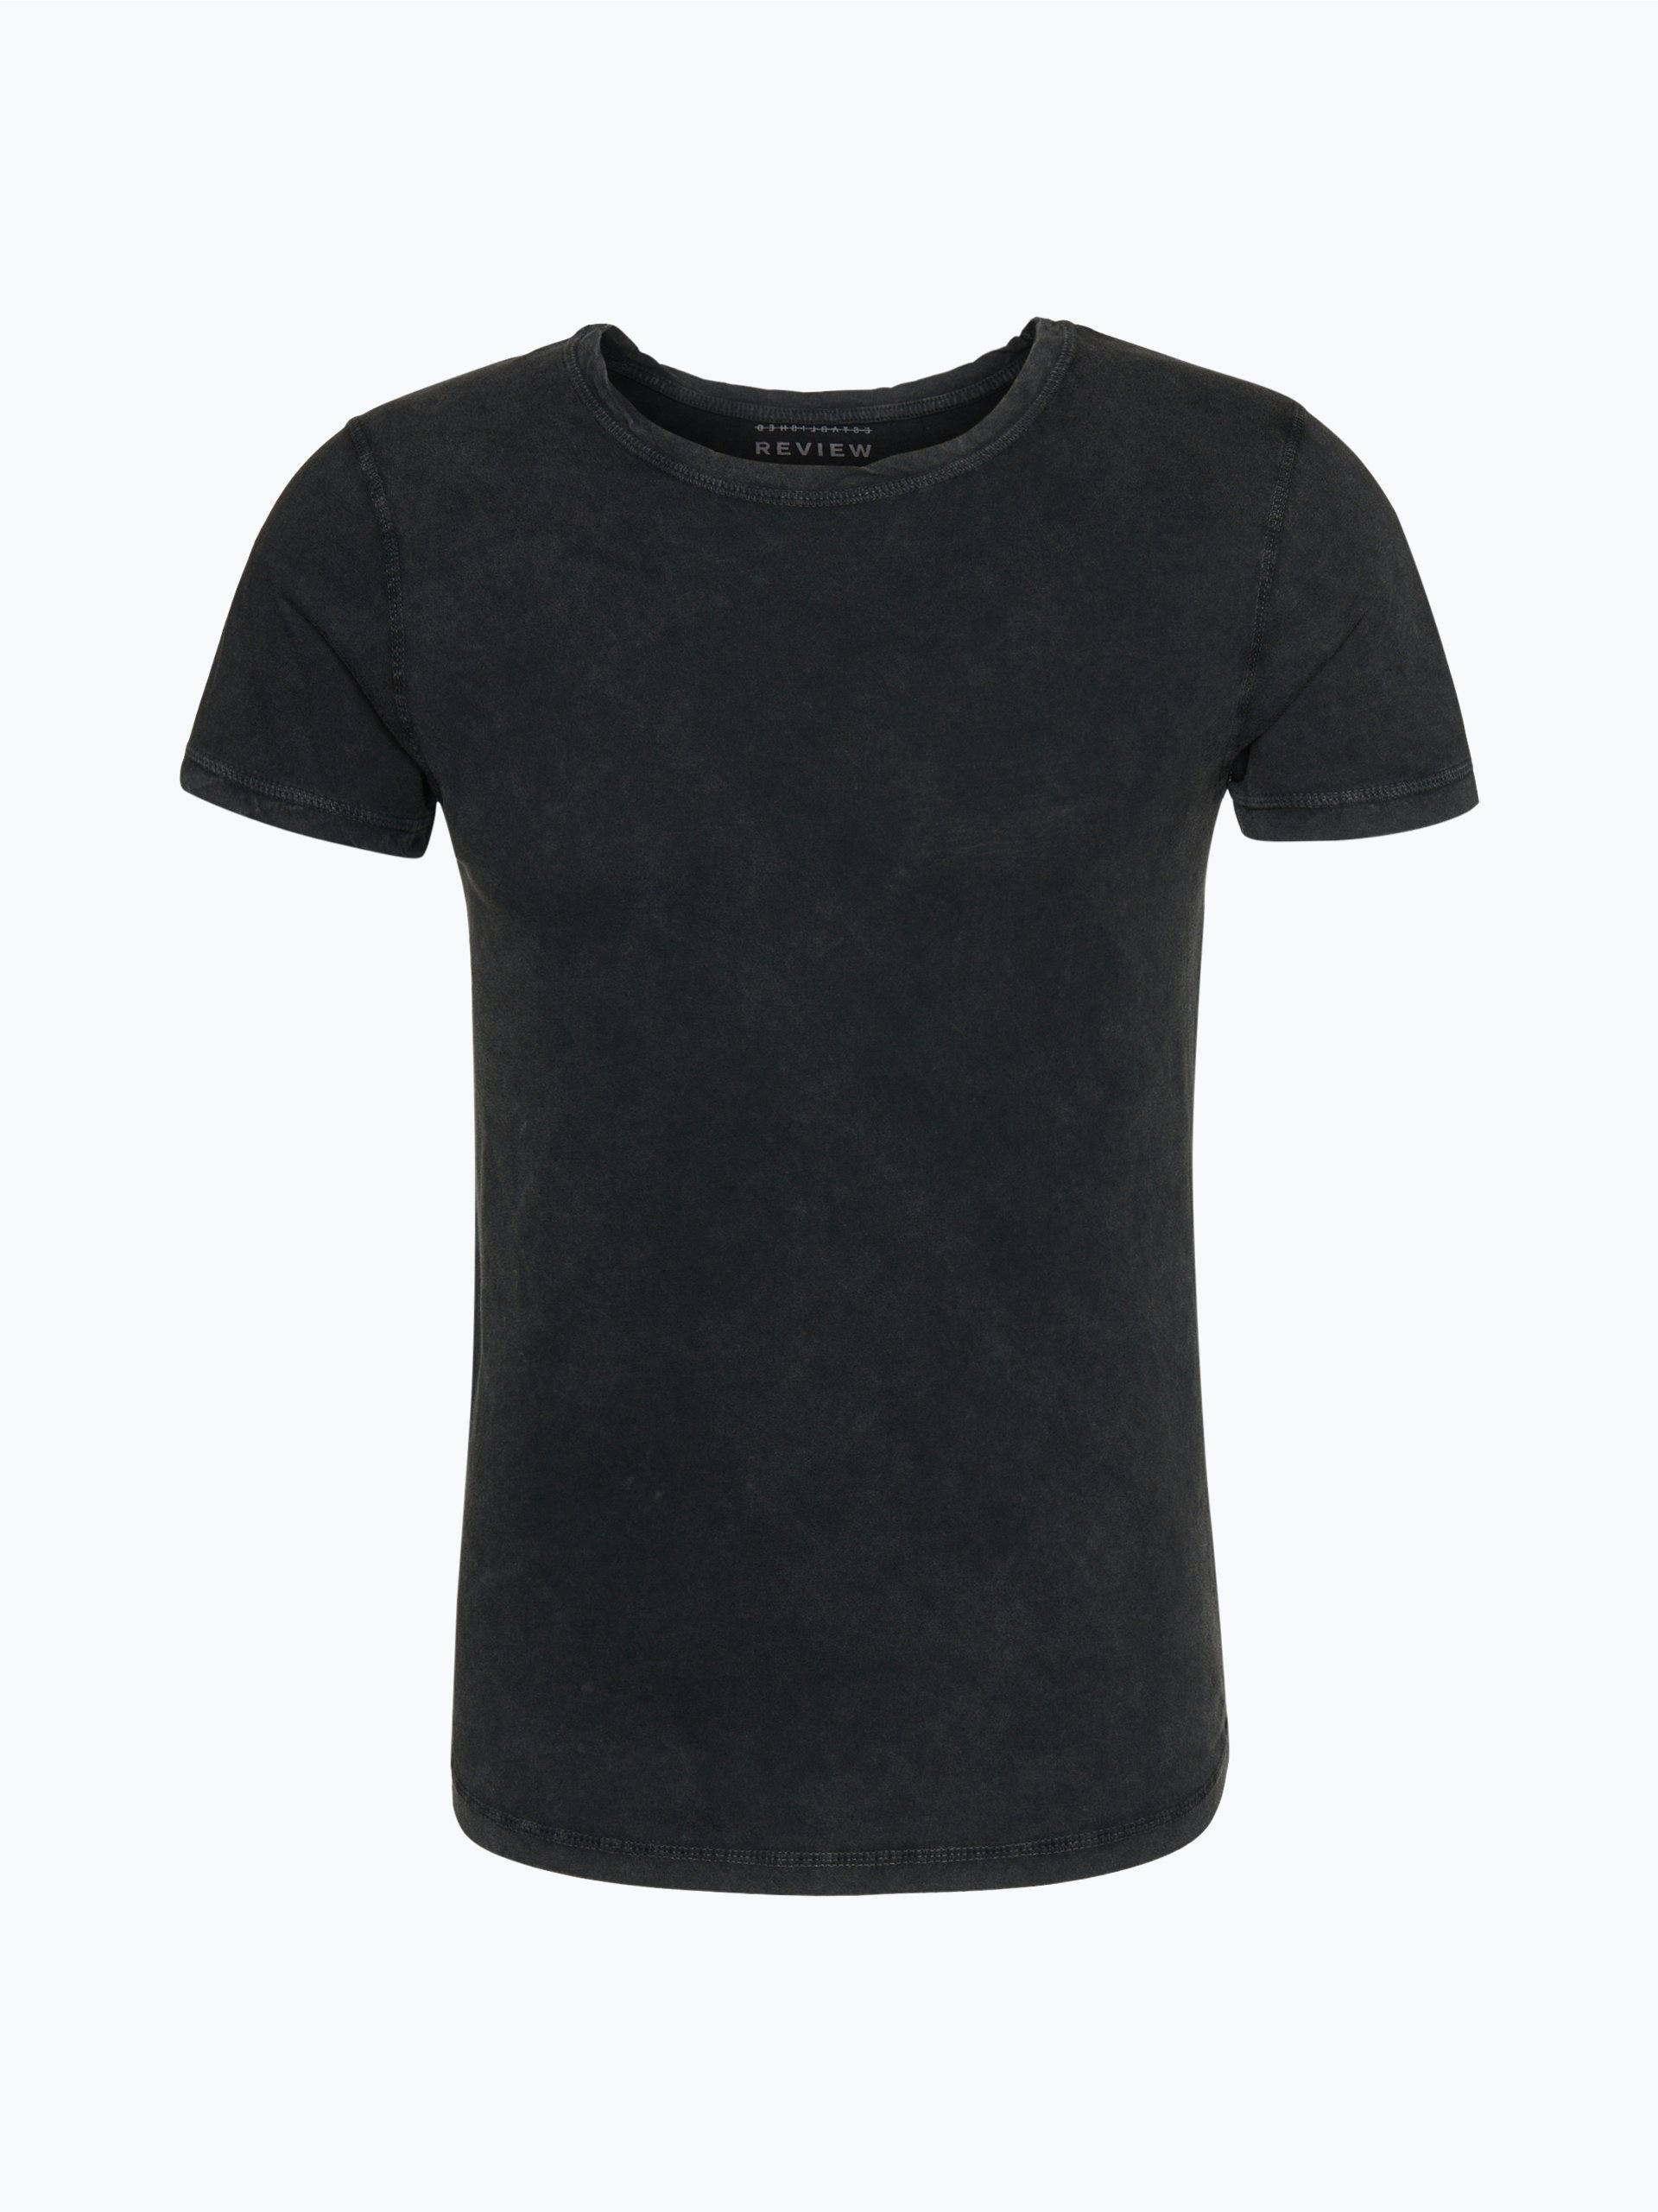 review herren t shirt schwarz uni online kaufen peek und cloppenburg de. Black Bedroom Furniture Sets. Home Design Ideas